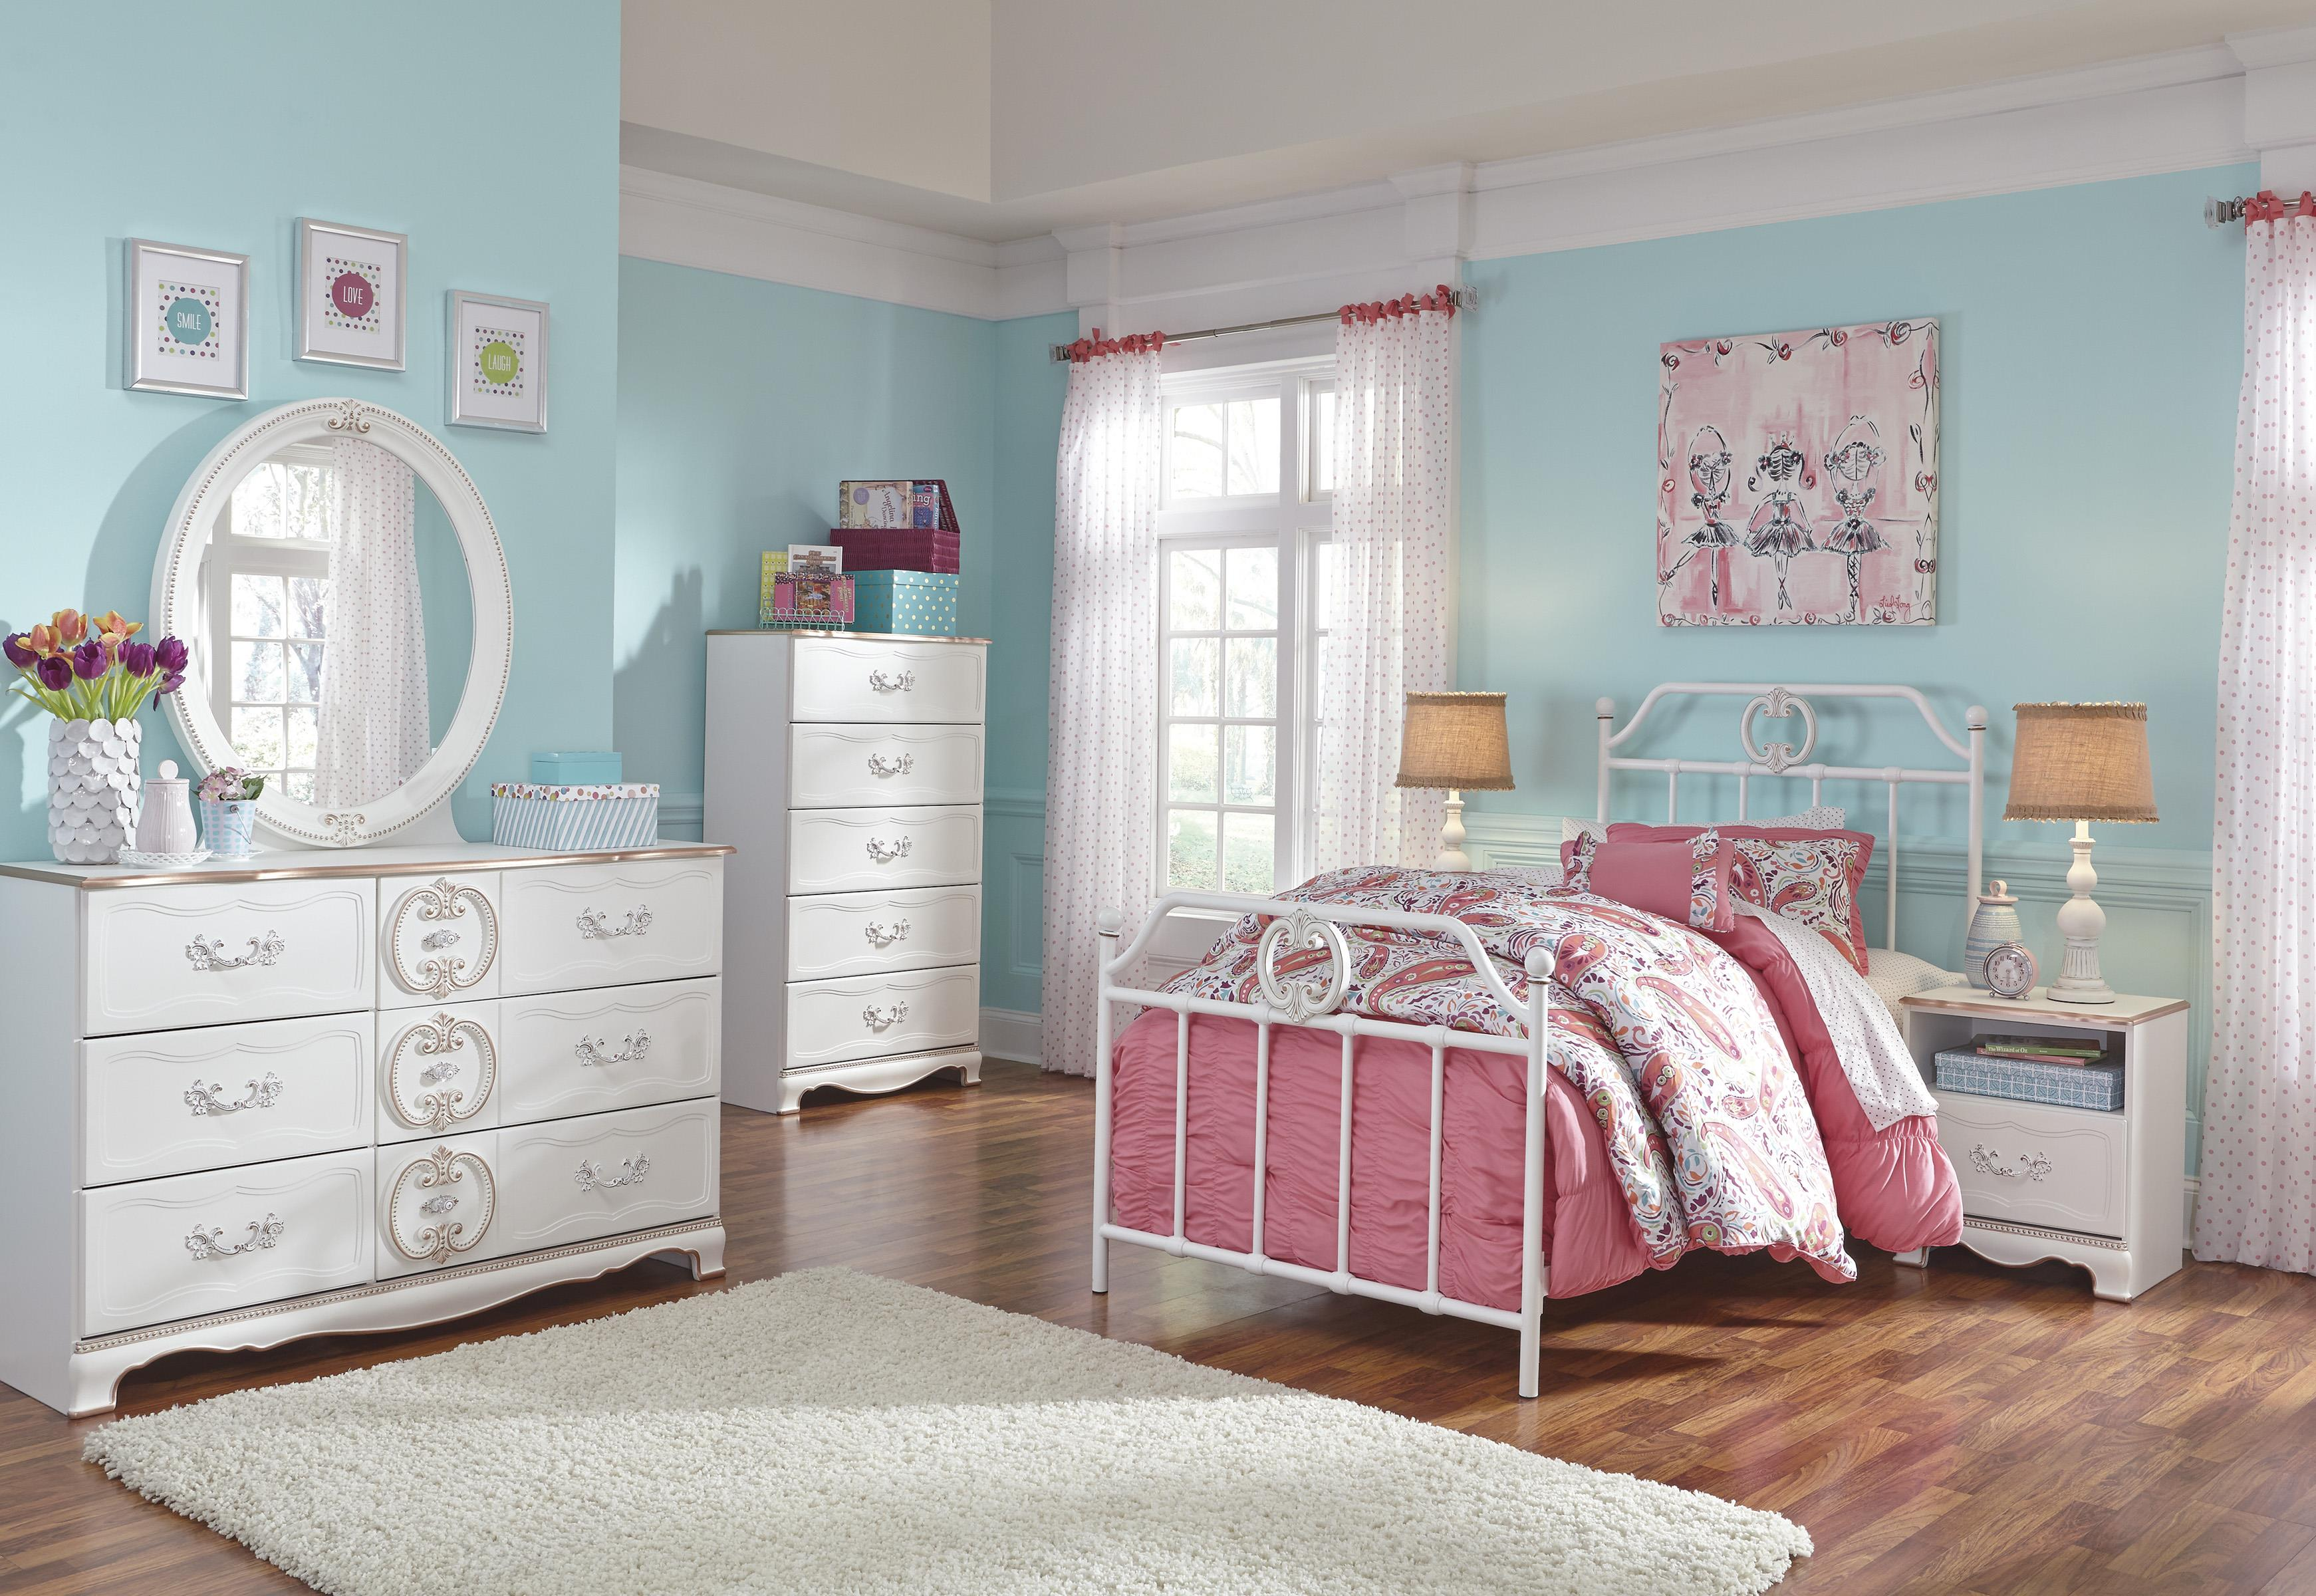 Signature Design by Ashley Korabella Twin Bedroom Group - Item Number: B355 T Bedroom Group 3